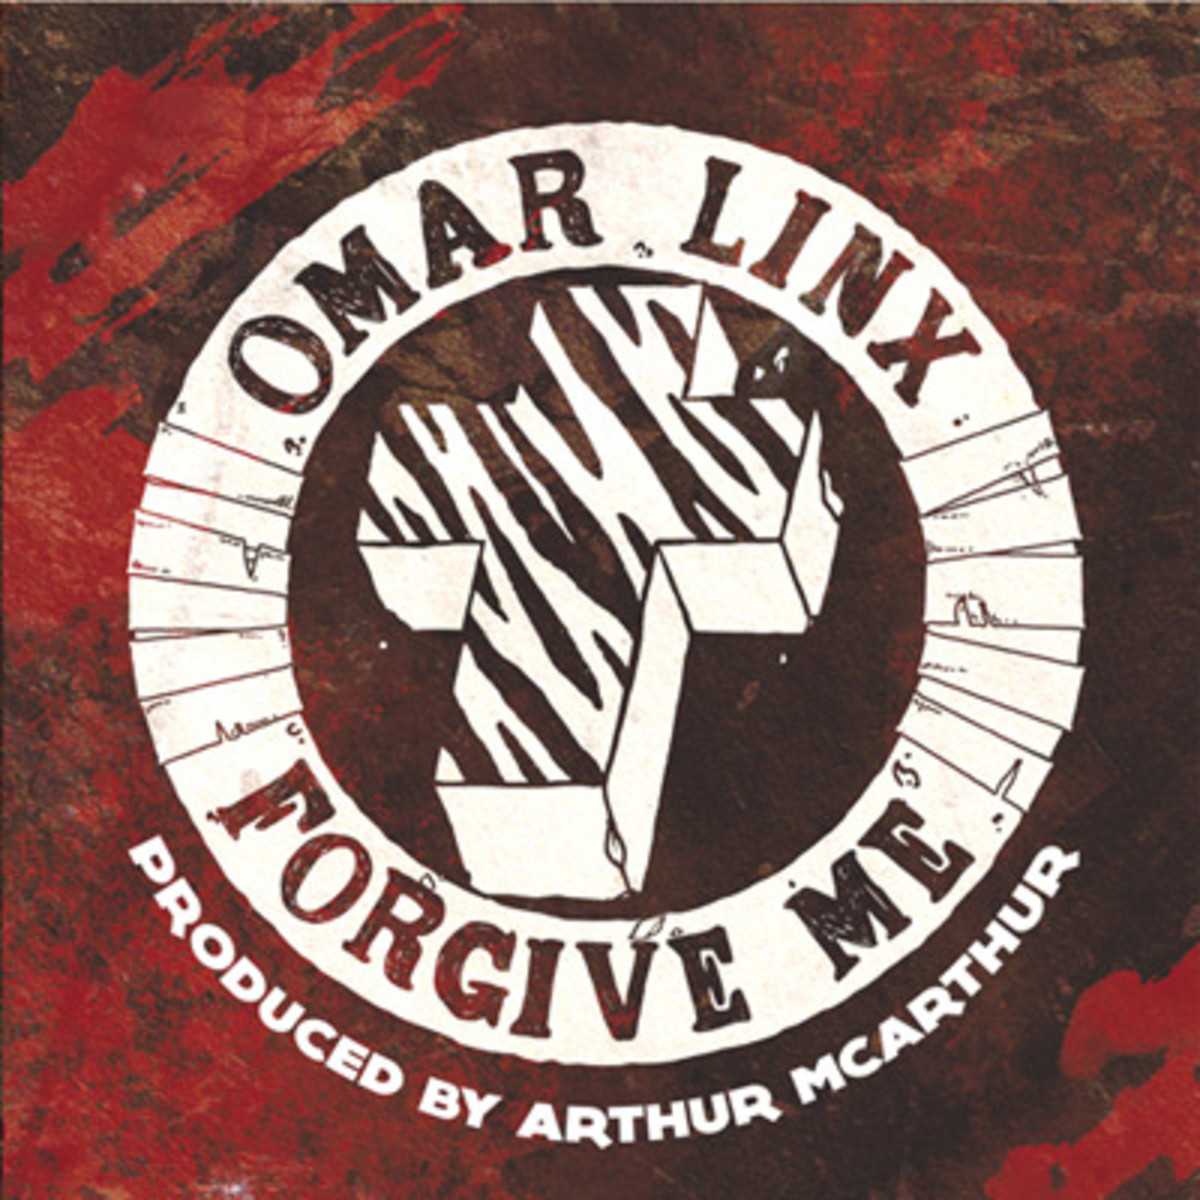 omarlinx-forgiveme.jpg